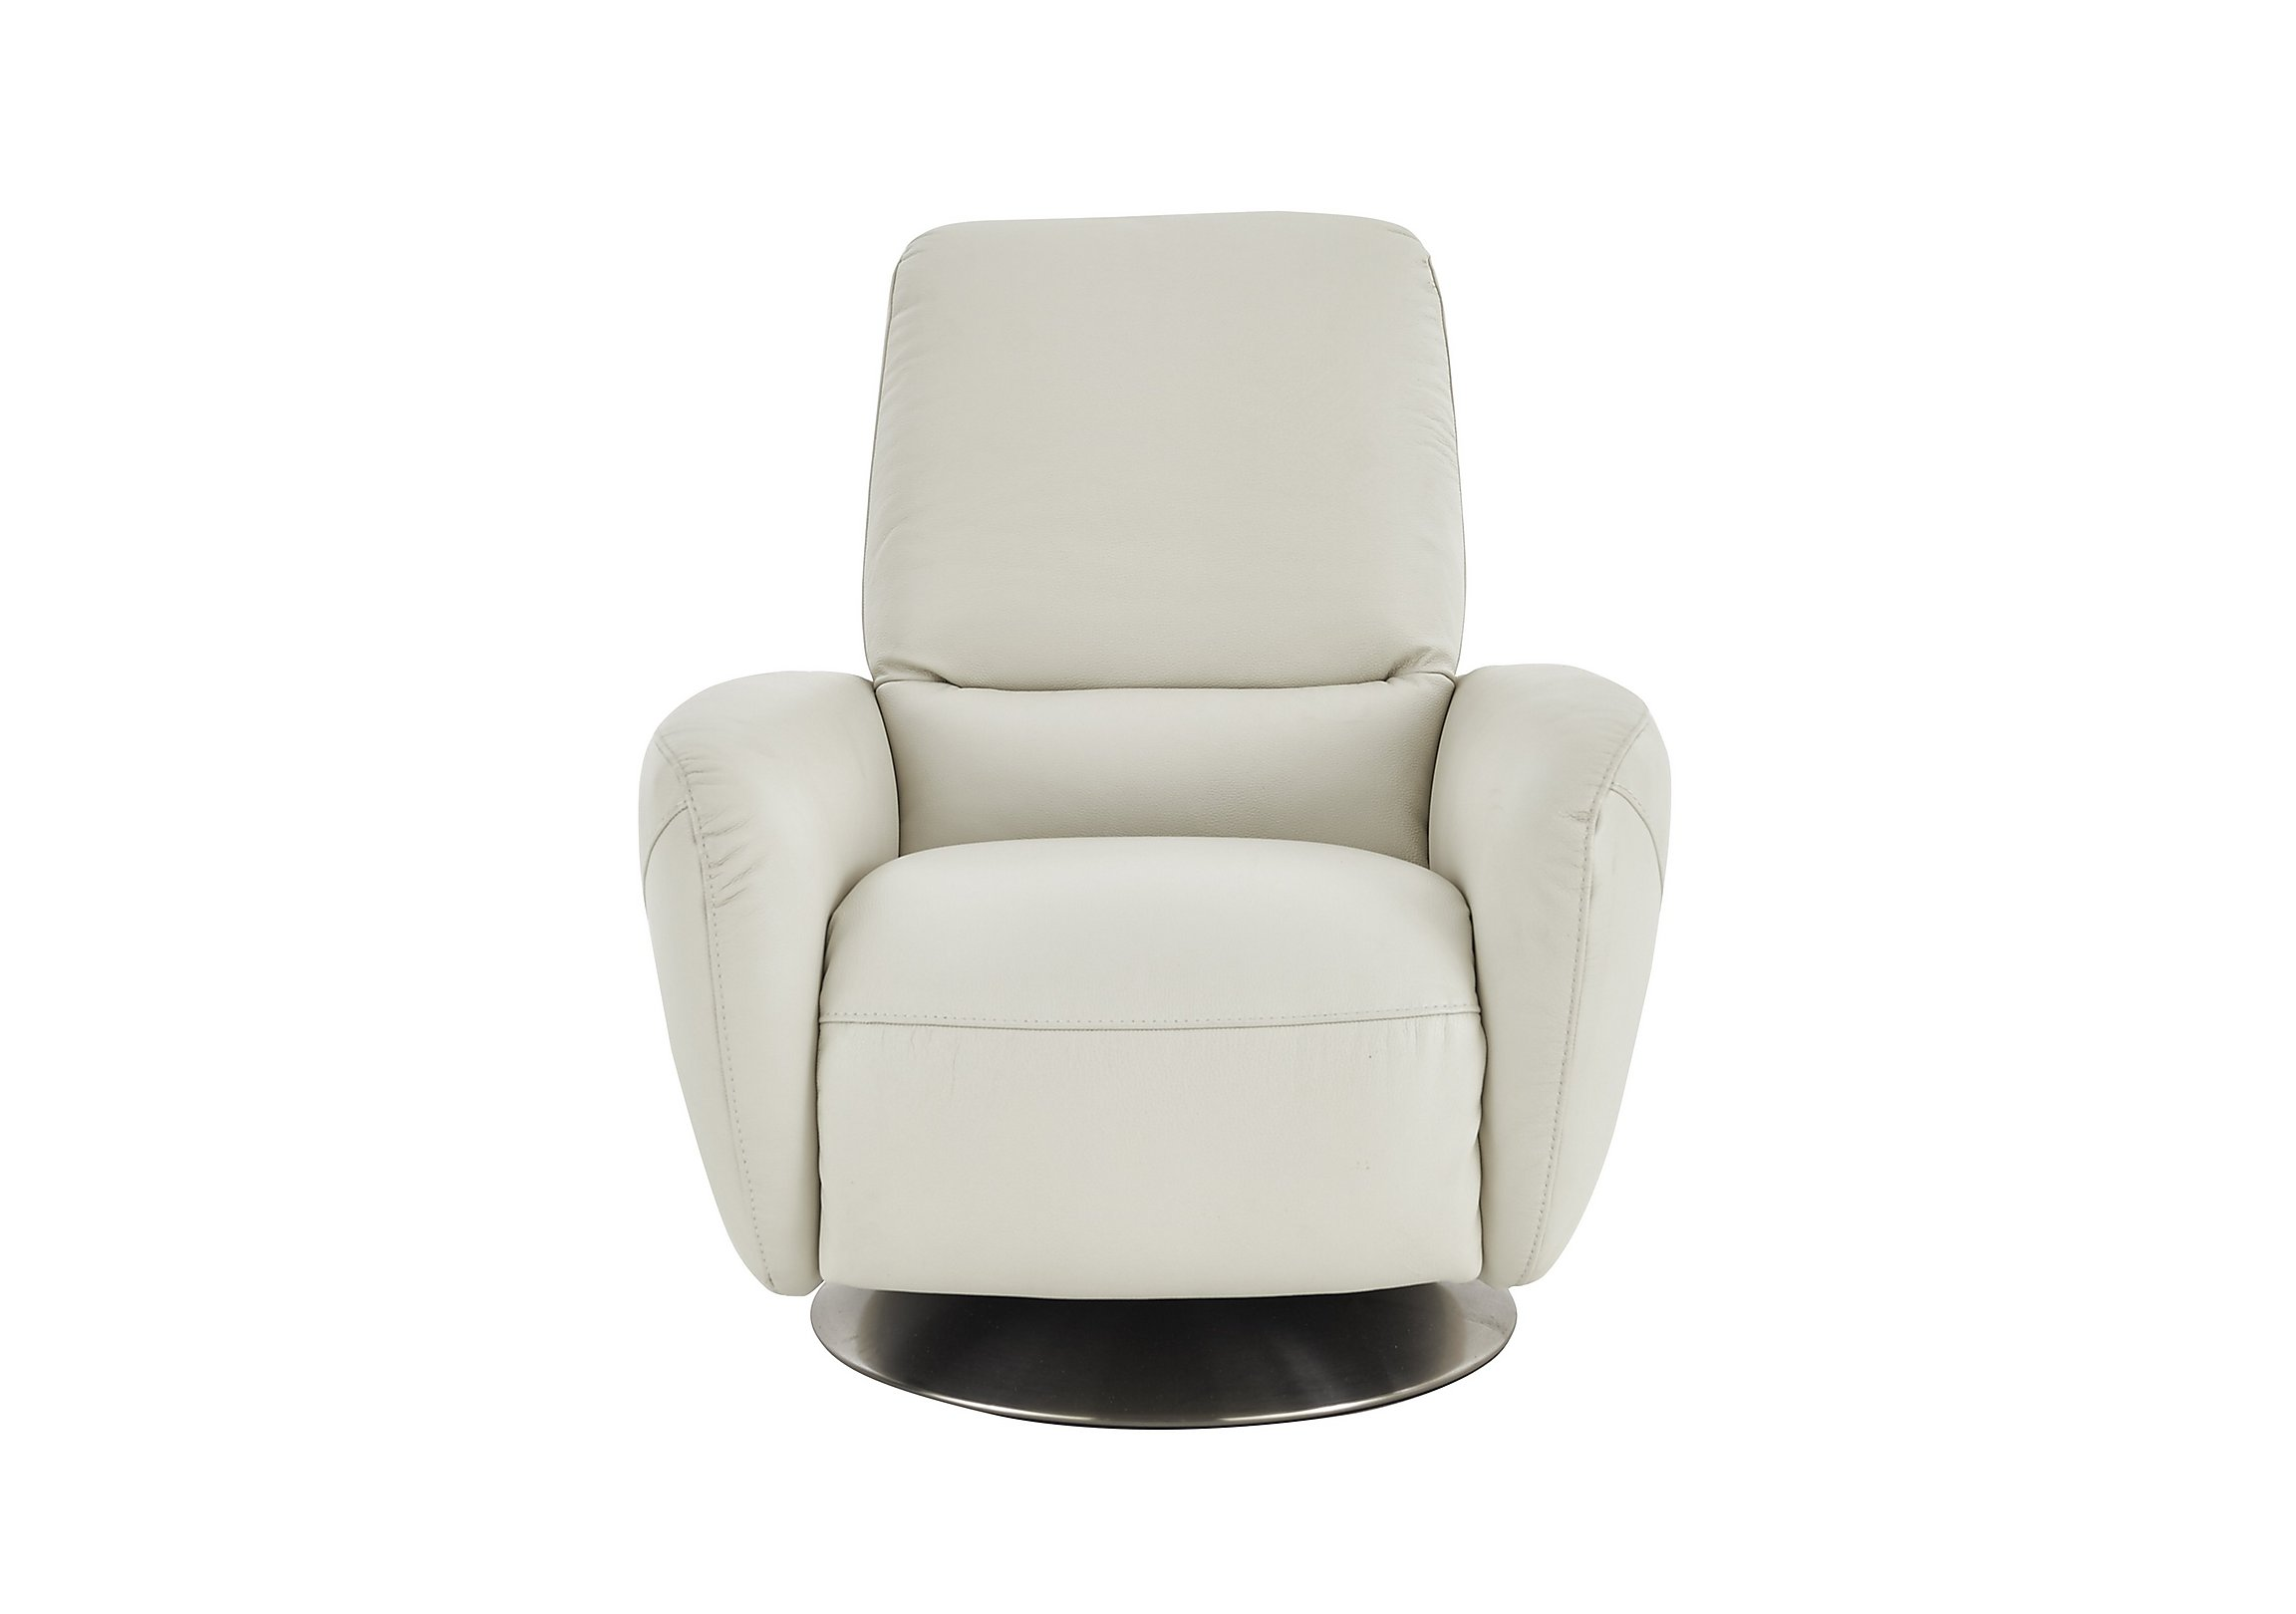 best images pinterest natuzzi on electric power by recliner editions sofia recliners furniture